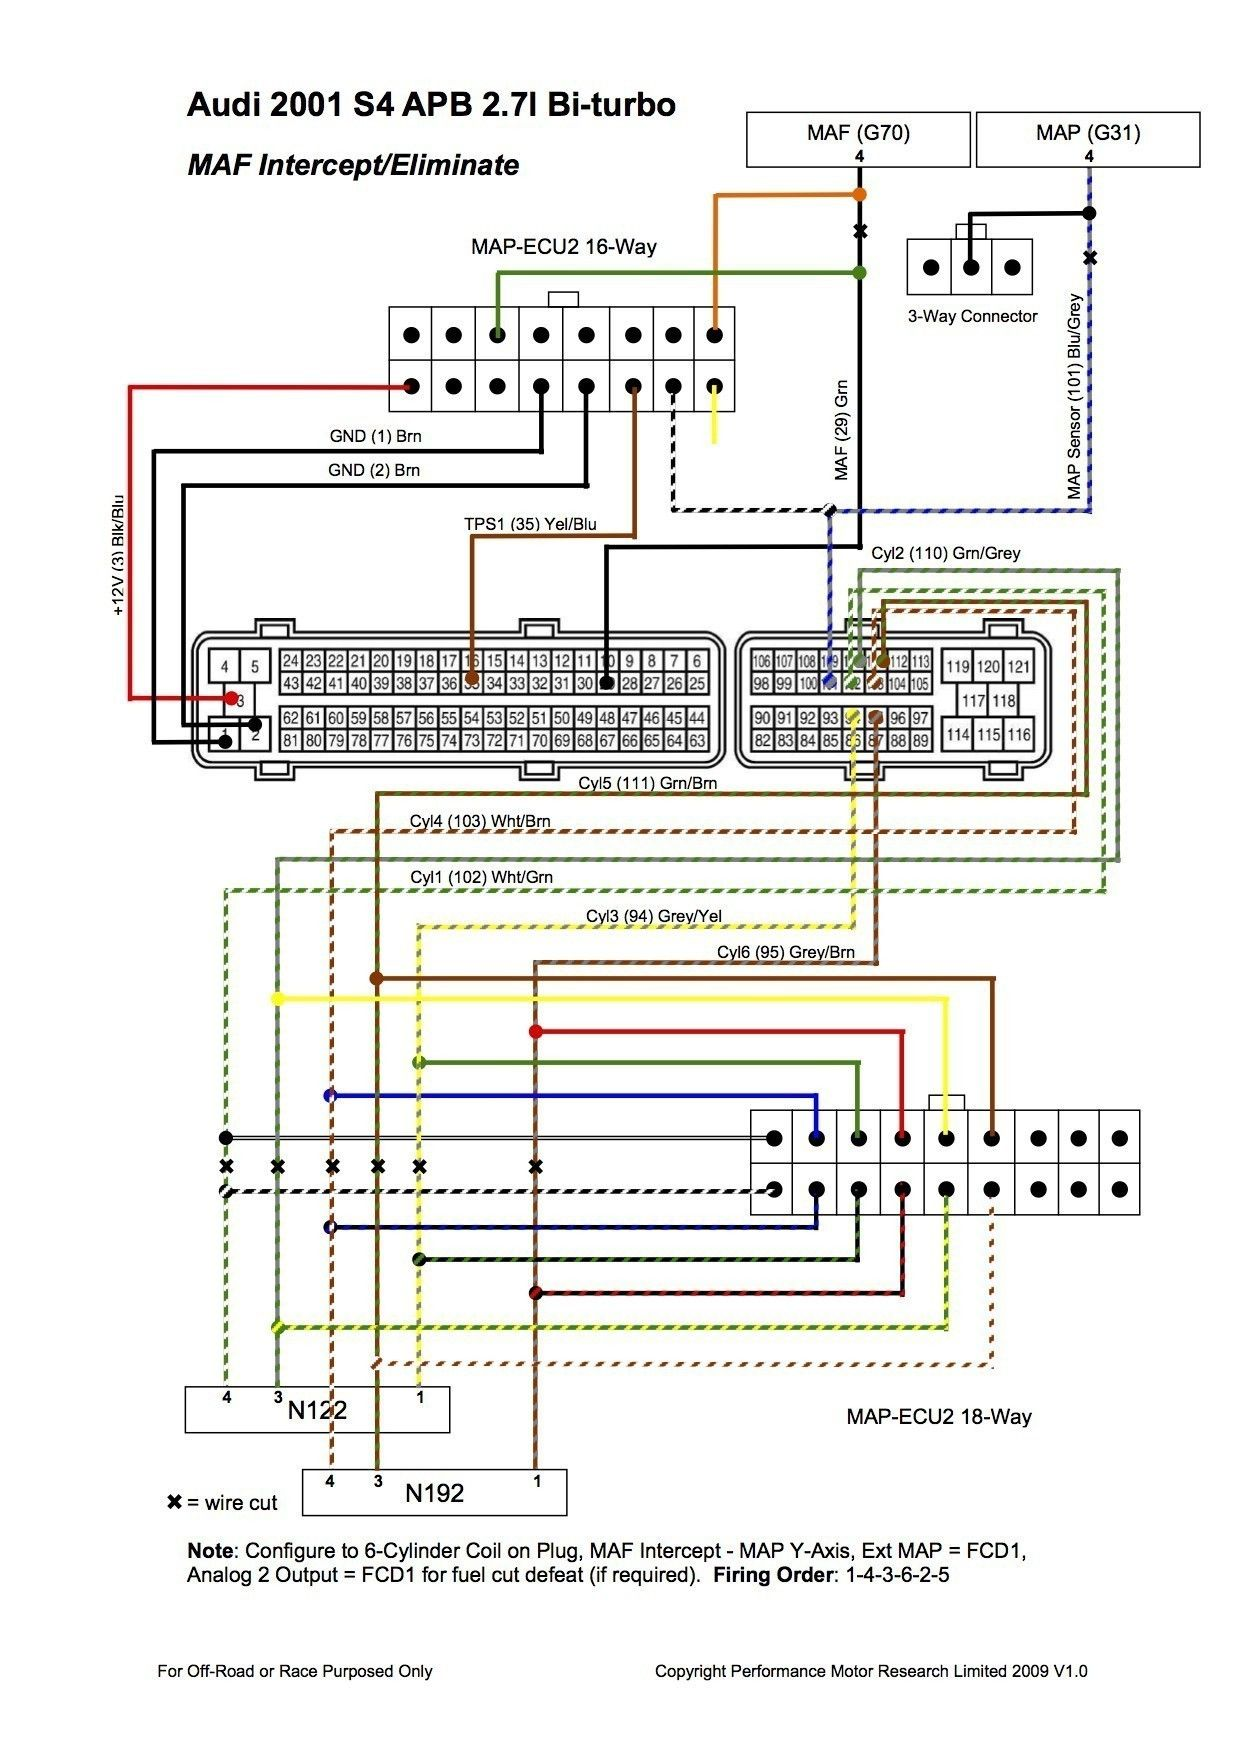 Pin about Trailer wiring diagram, Diagram and Dodge ram